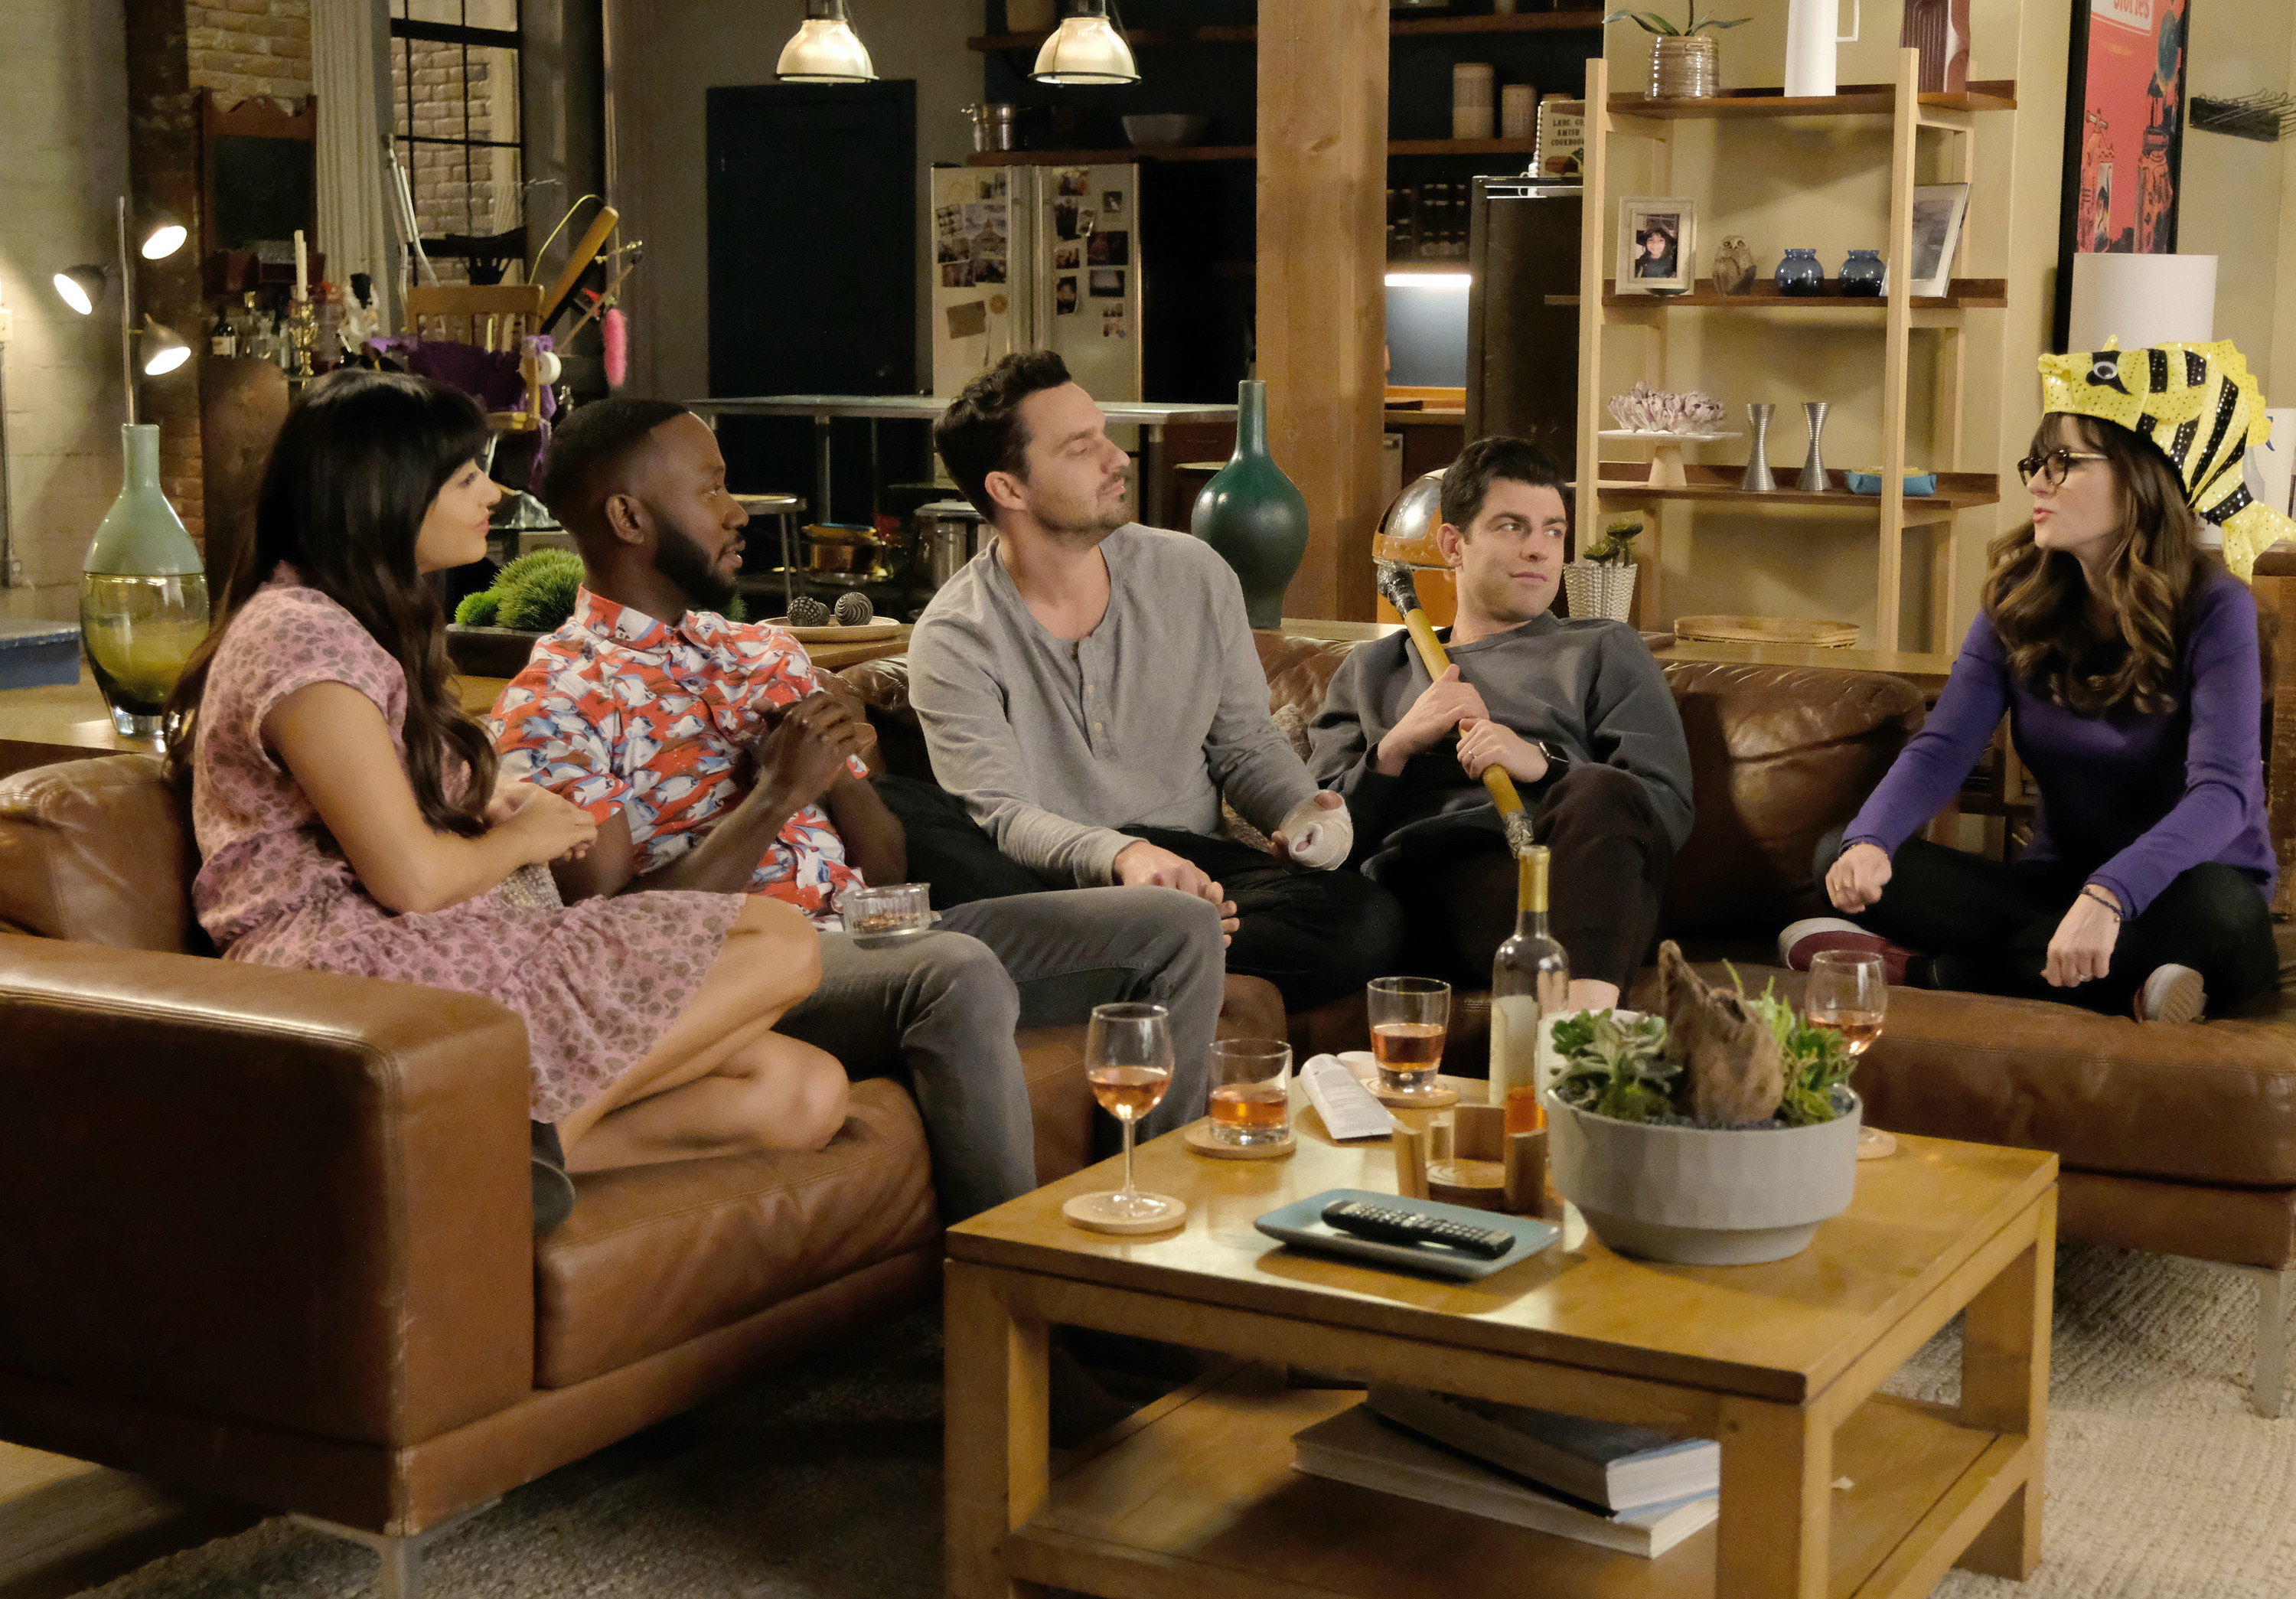 """Hannah Simone, Lamorne Morris, Jake Johnson, Max Greenfield, and Zooey Deschanel sitting on the couch with glasses of wine in front of them as Cece, Winston, Nick, Schmidt, and Jess on """"New Girl"""""""